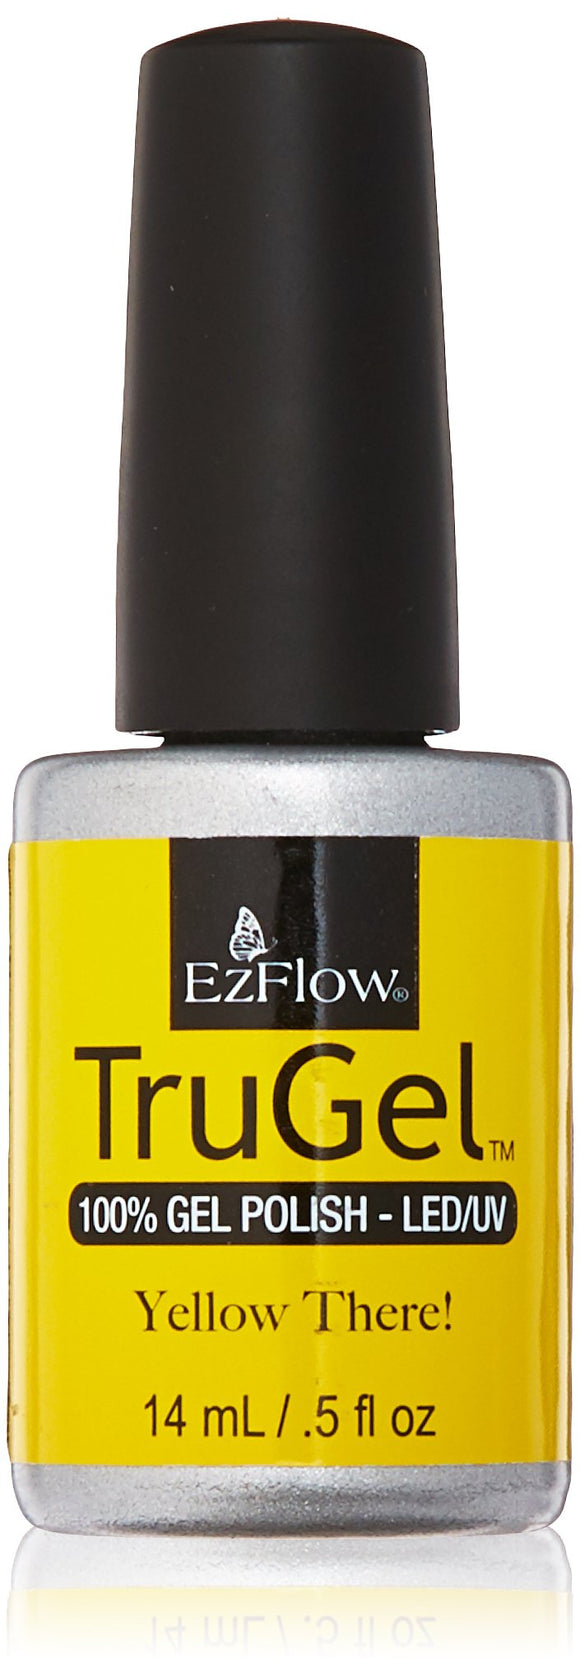 Ez Flow TruGel LED/UV Gel Polish - 14 mL (Yellow There! - EZTG42457)